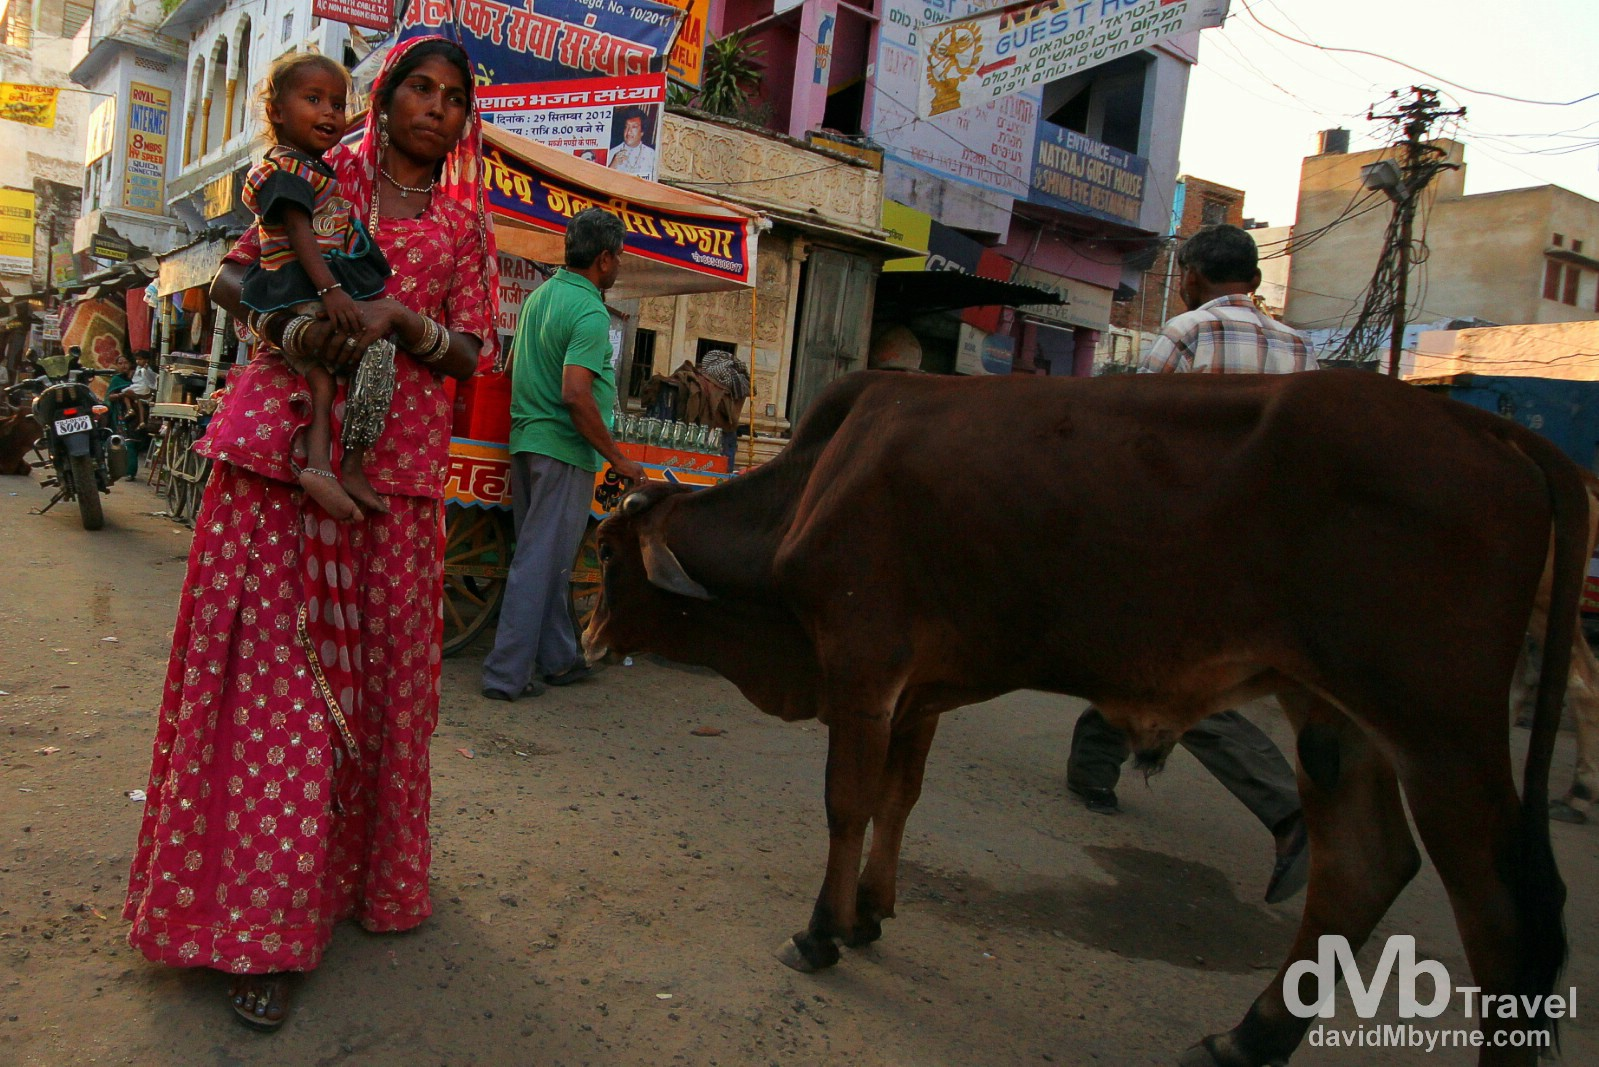 Avoiding a cow on the streets of Pushkar, Rajasthan, India. October 3rd 2012.